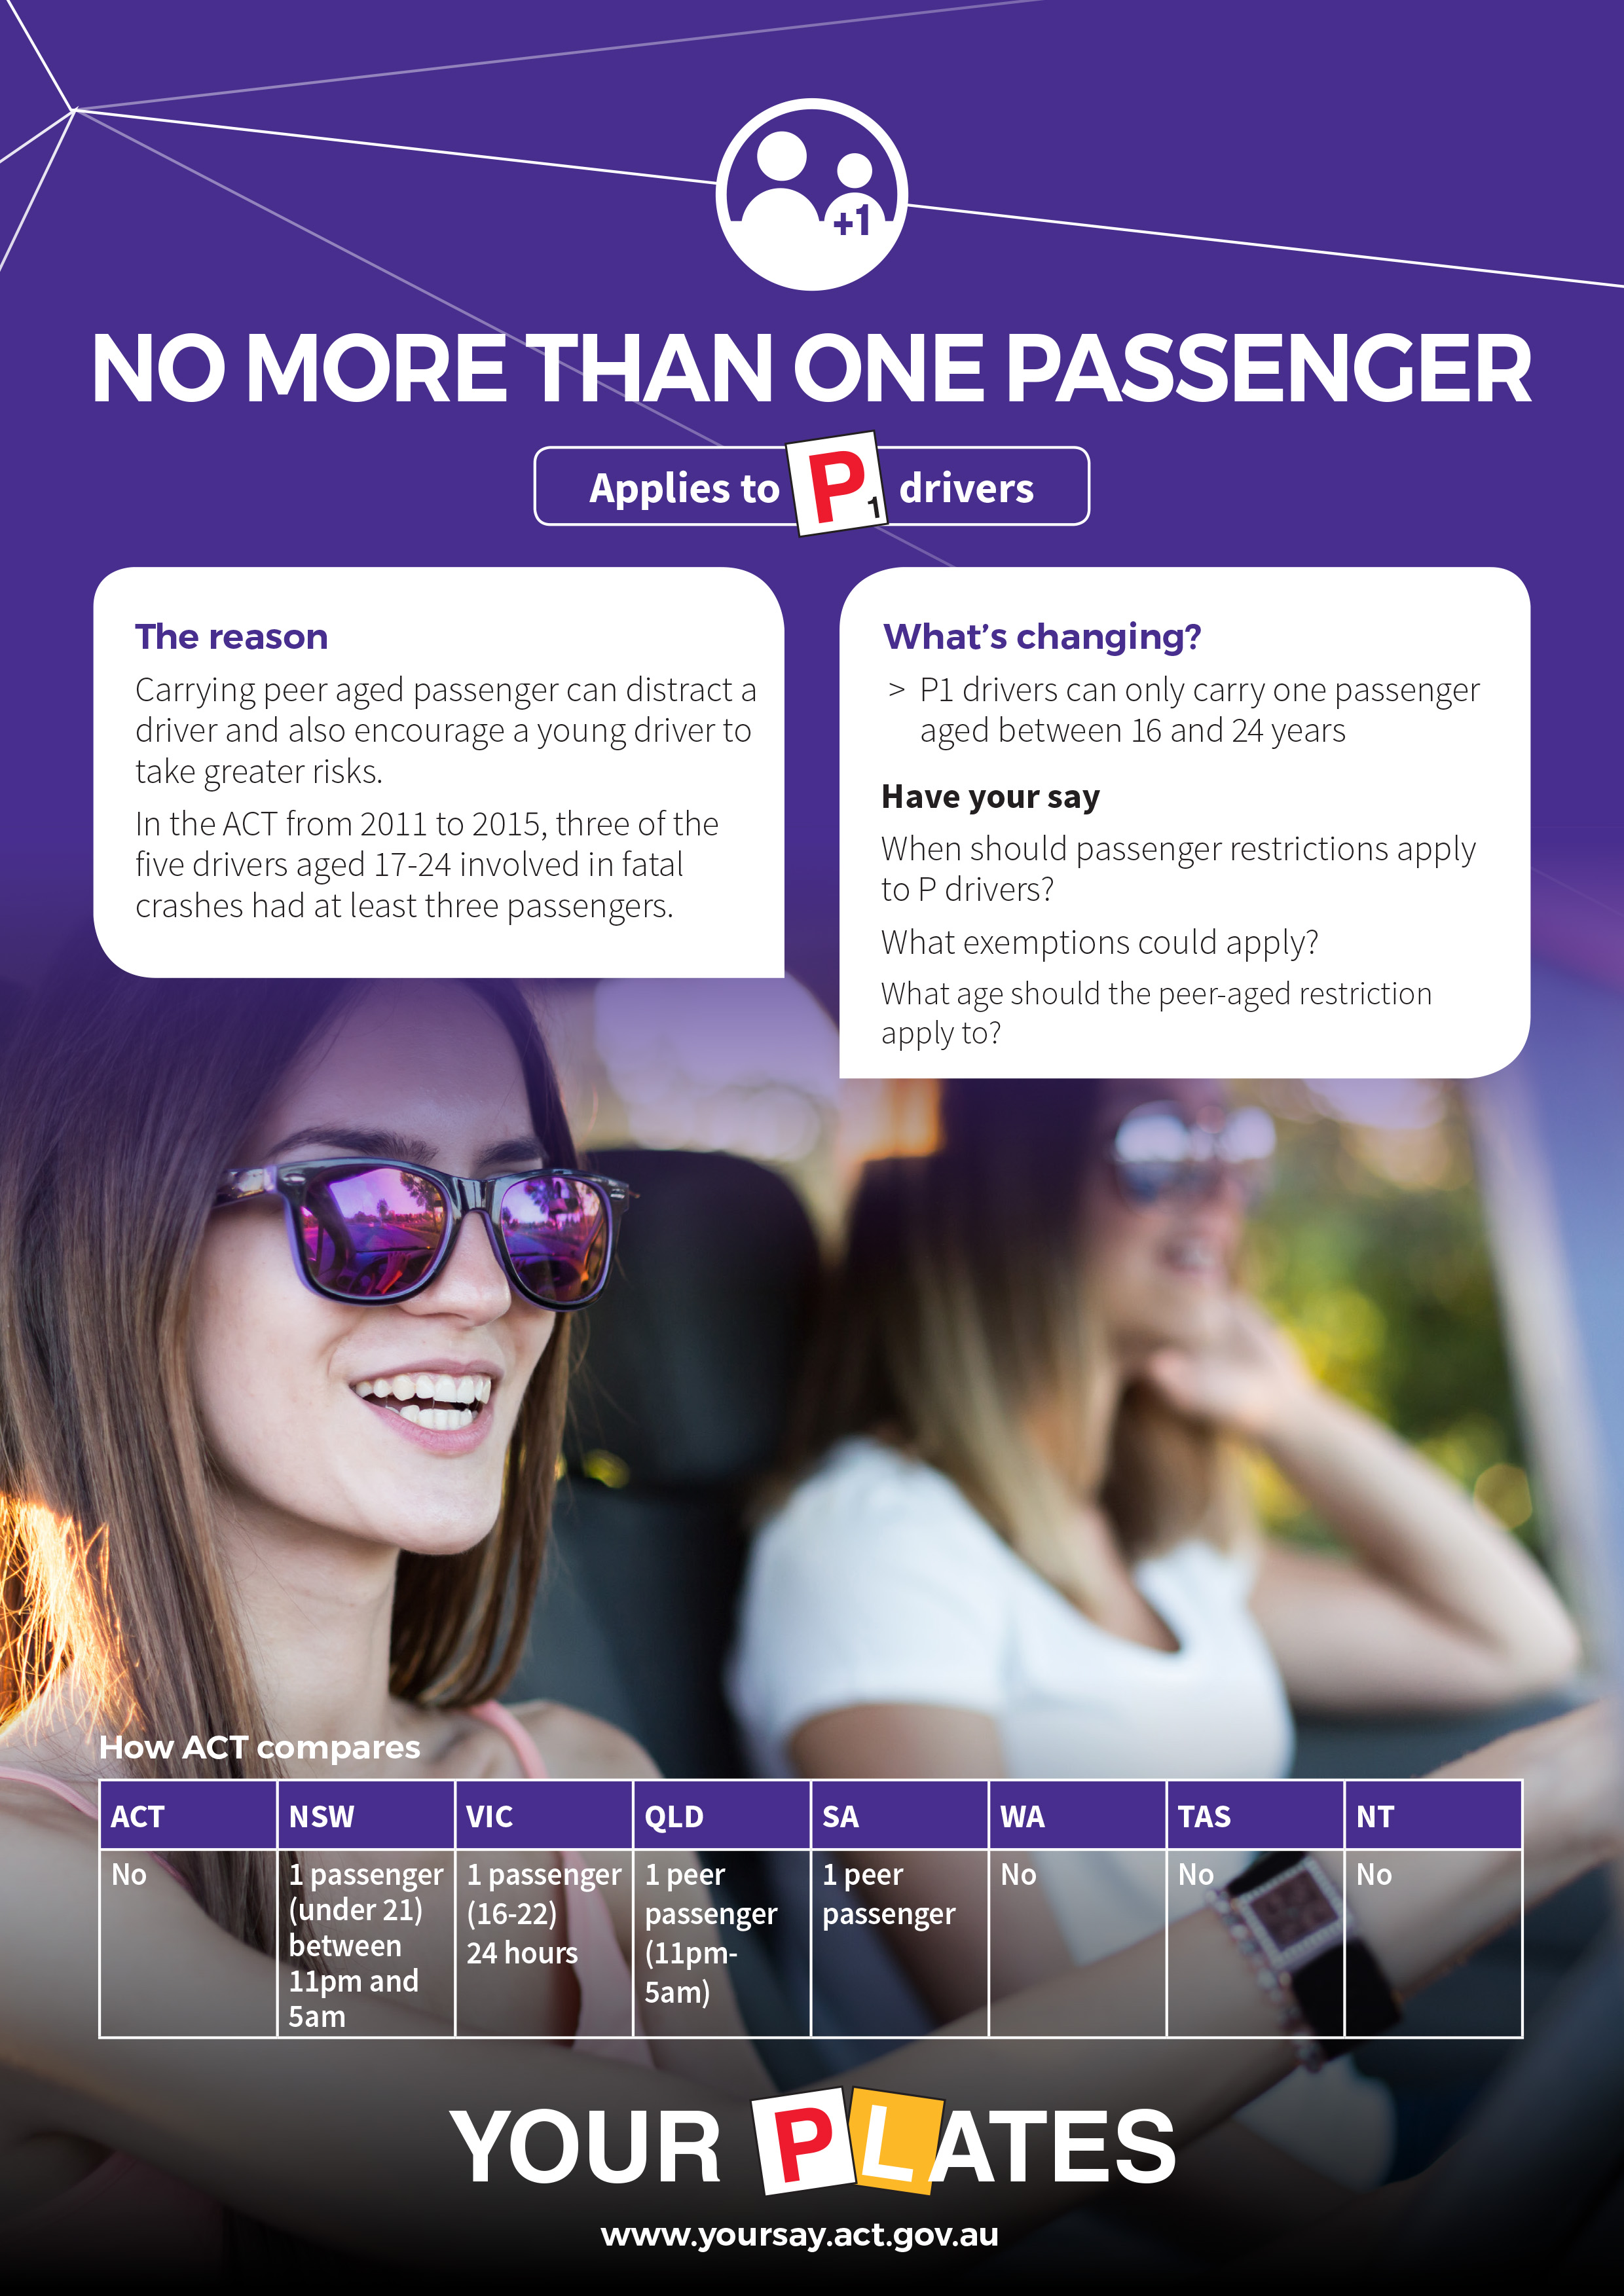 Carrying peer aged passenger can distrcat a driver and also encourage a young drive rto take greater risks.